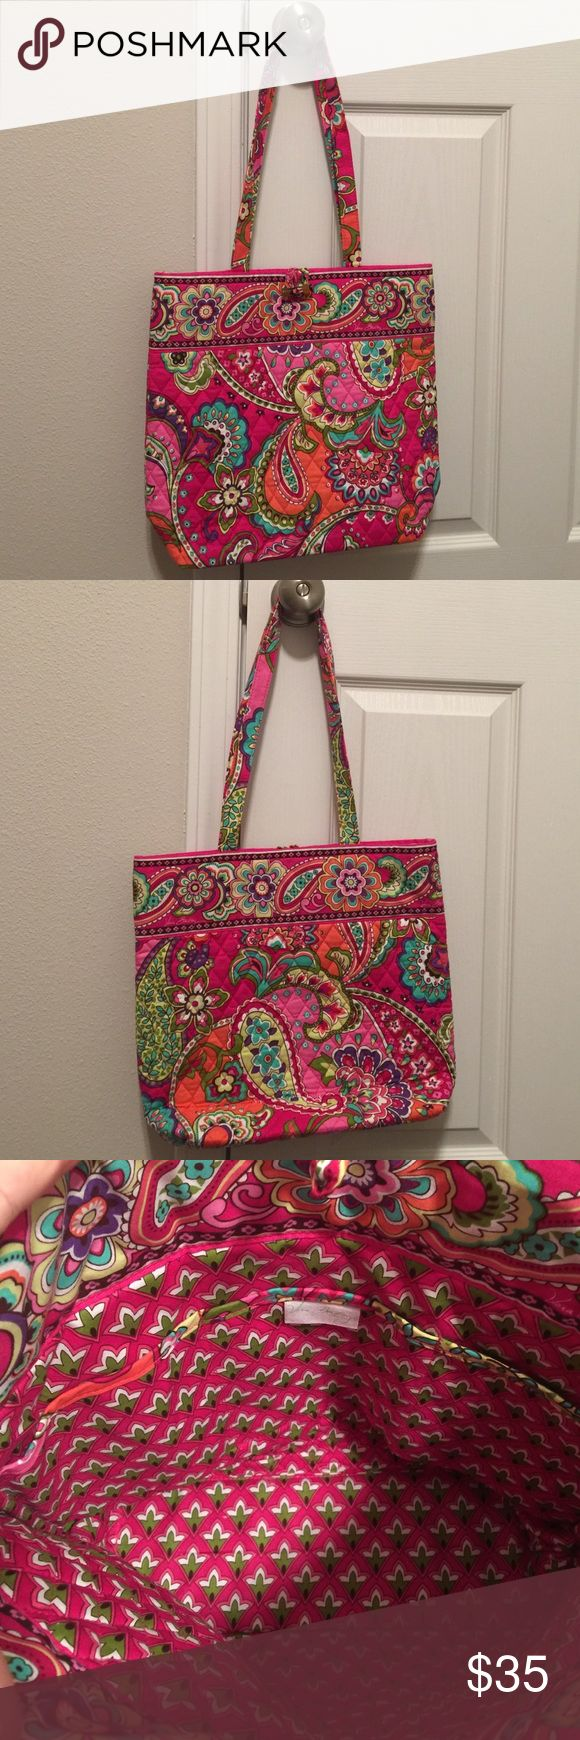 BRAND NEW Vera Bradley tote in Pink Swirls  This baby is crisp, brand new! (No tags). Won as a finishers gift at the Vera Bradley half marathon in Seaside :) never used. Vera Bradley Bags Totes